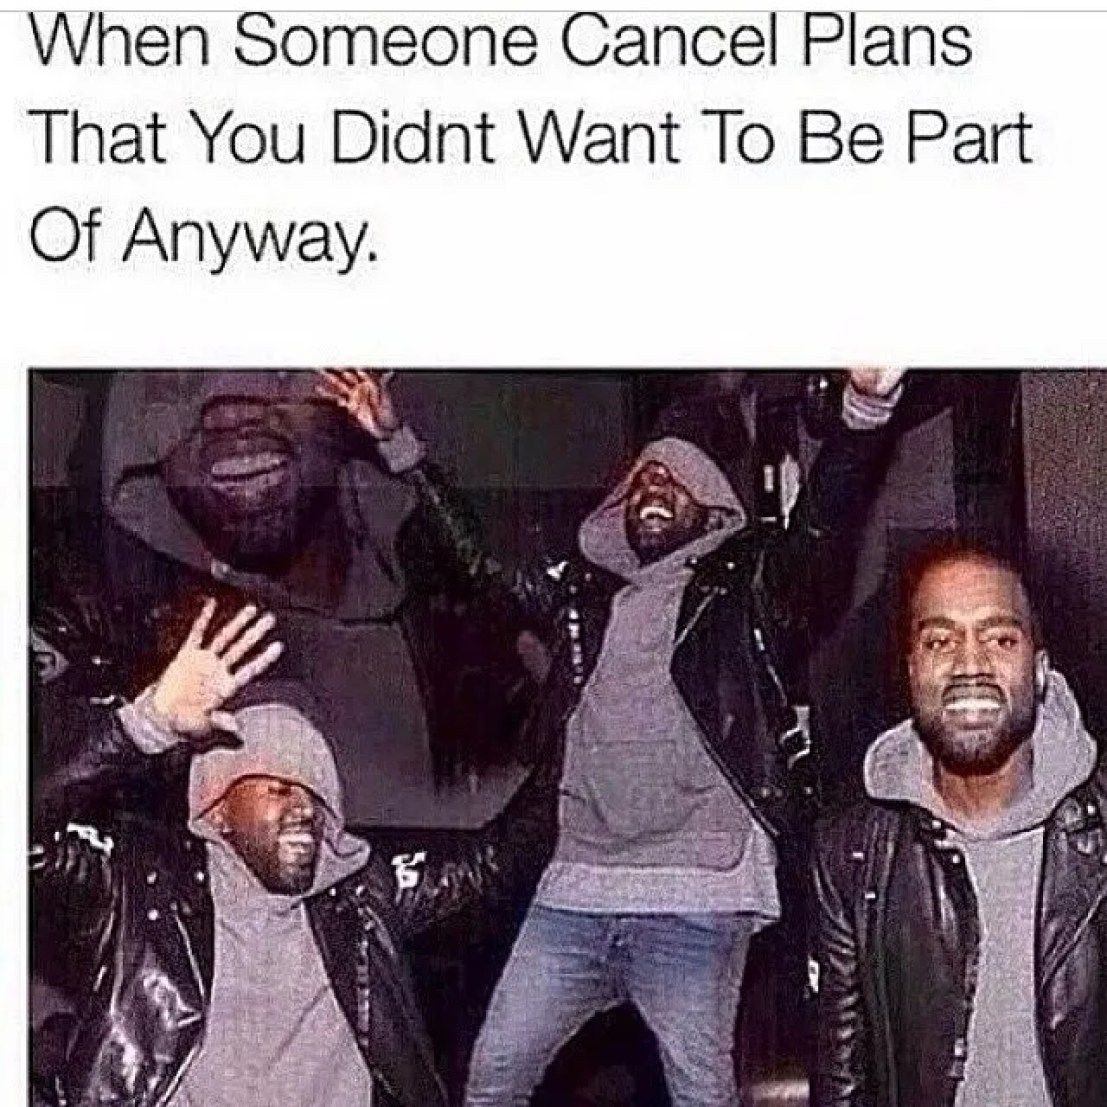 Memes About Introverts That Are Too True